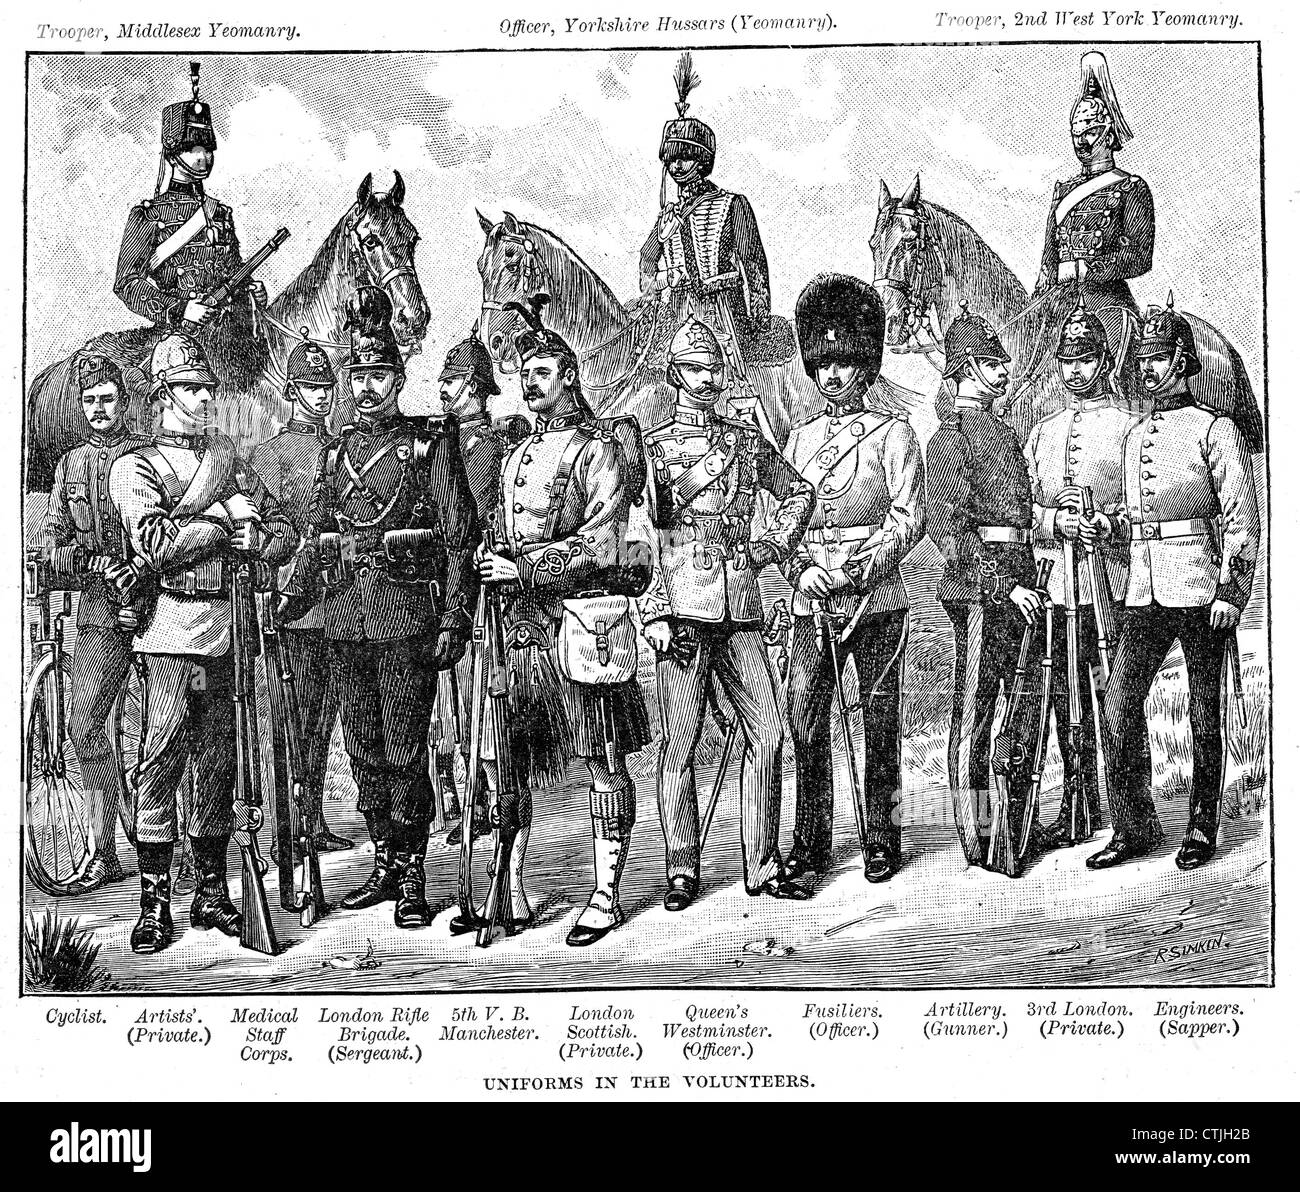 VICTORIAN UNIFORMS OF VOLUNTEER REGIMENTS in the British Army about 1900 - Stock Image